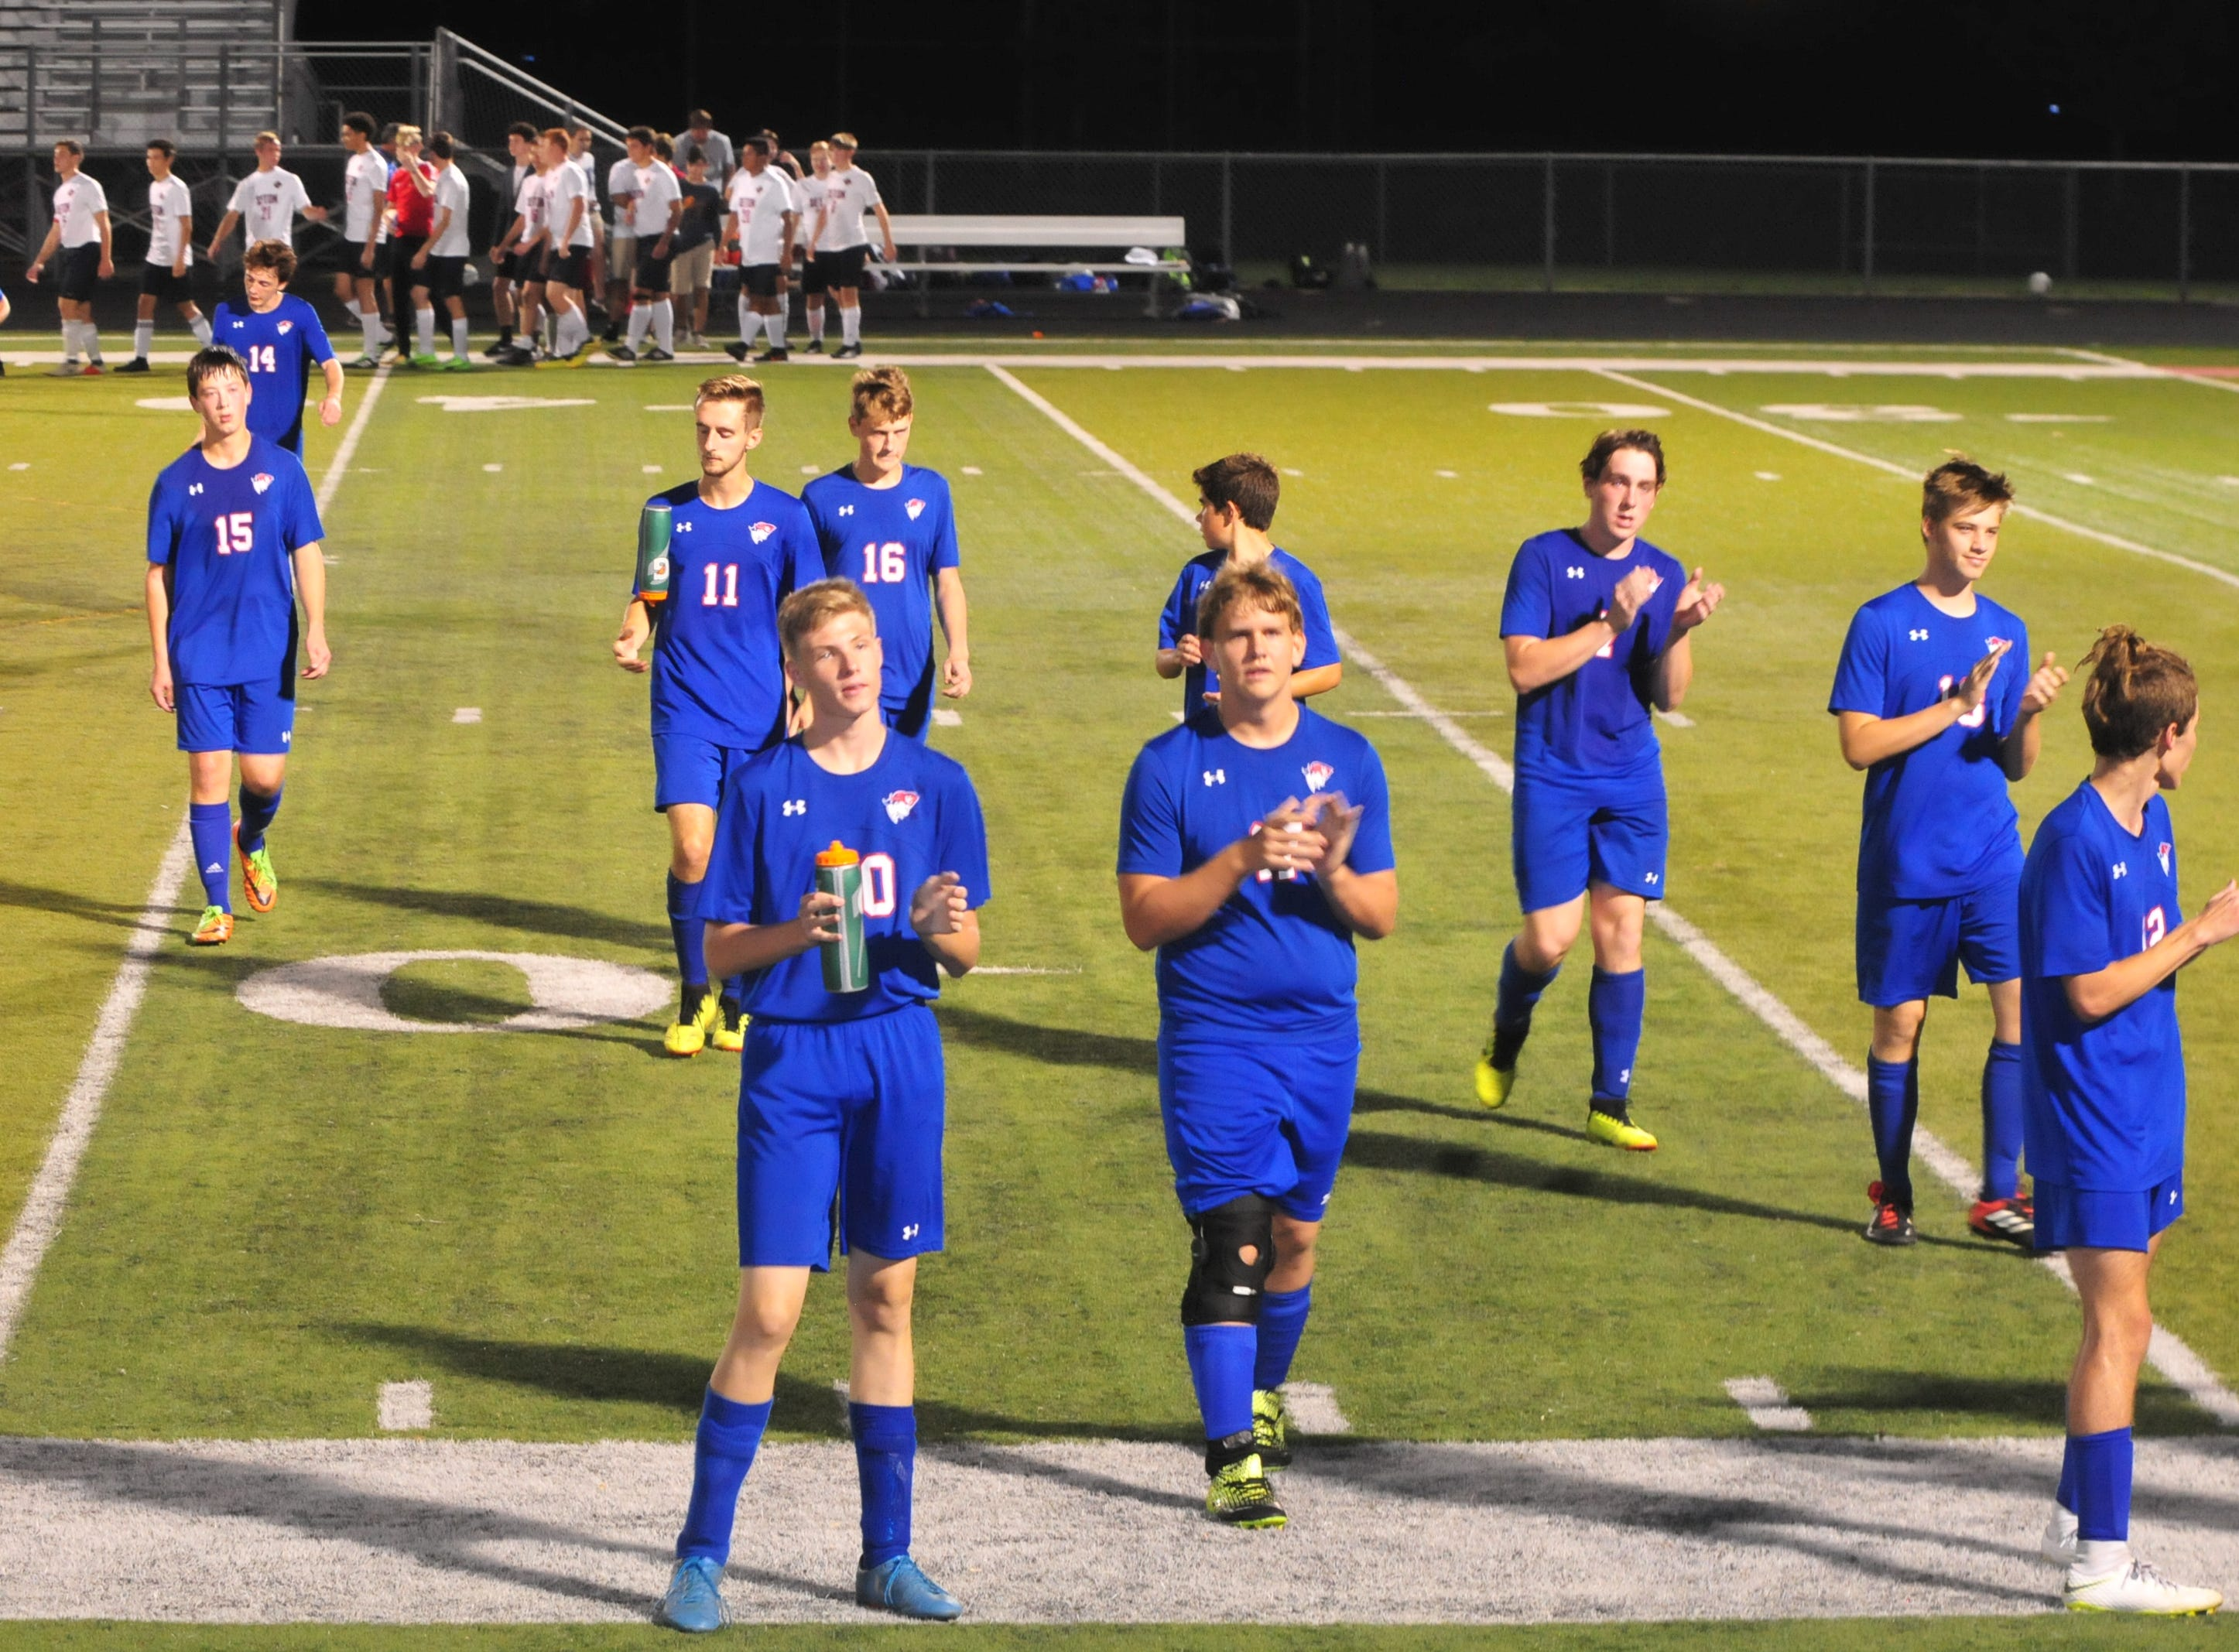 Union County's boys soccer team salutes its fans during the IHSAA Class A Sectional 42 boys soccer semifinal at Knightstown Wednesday, Oct. 3, 2018.